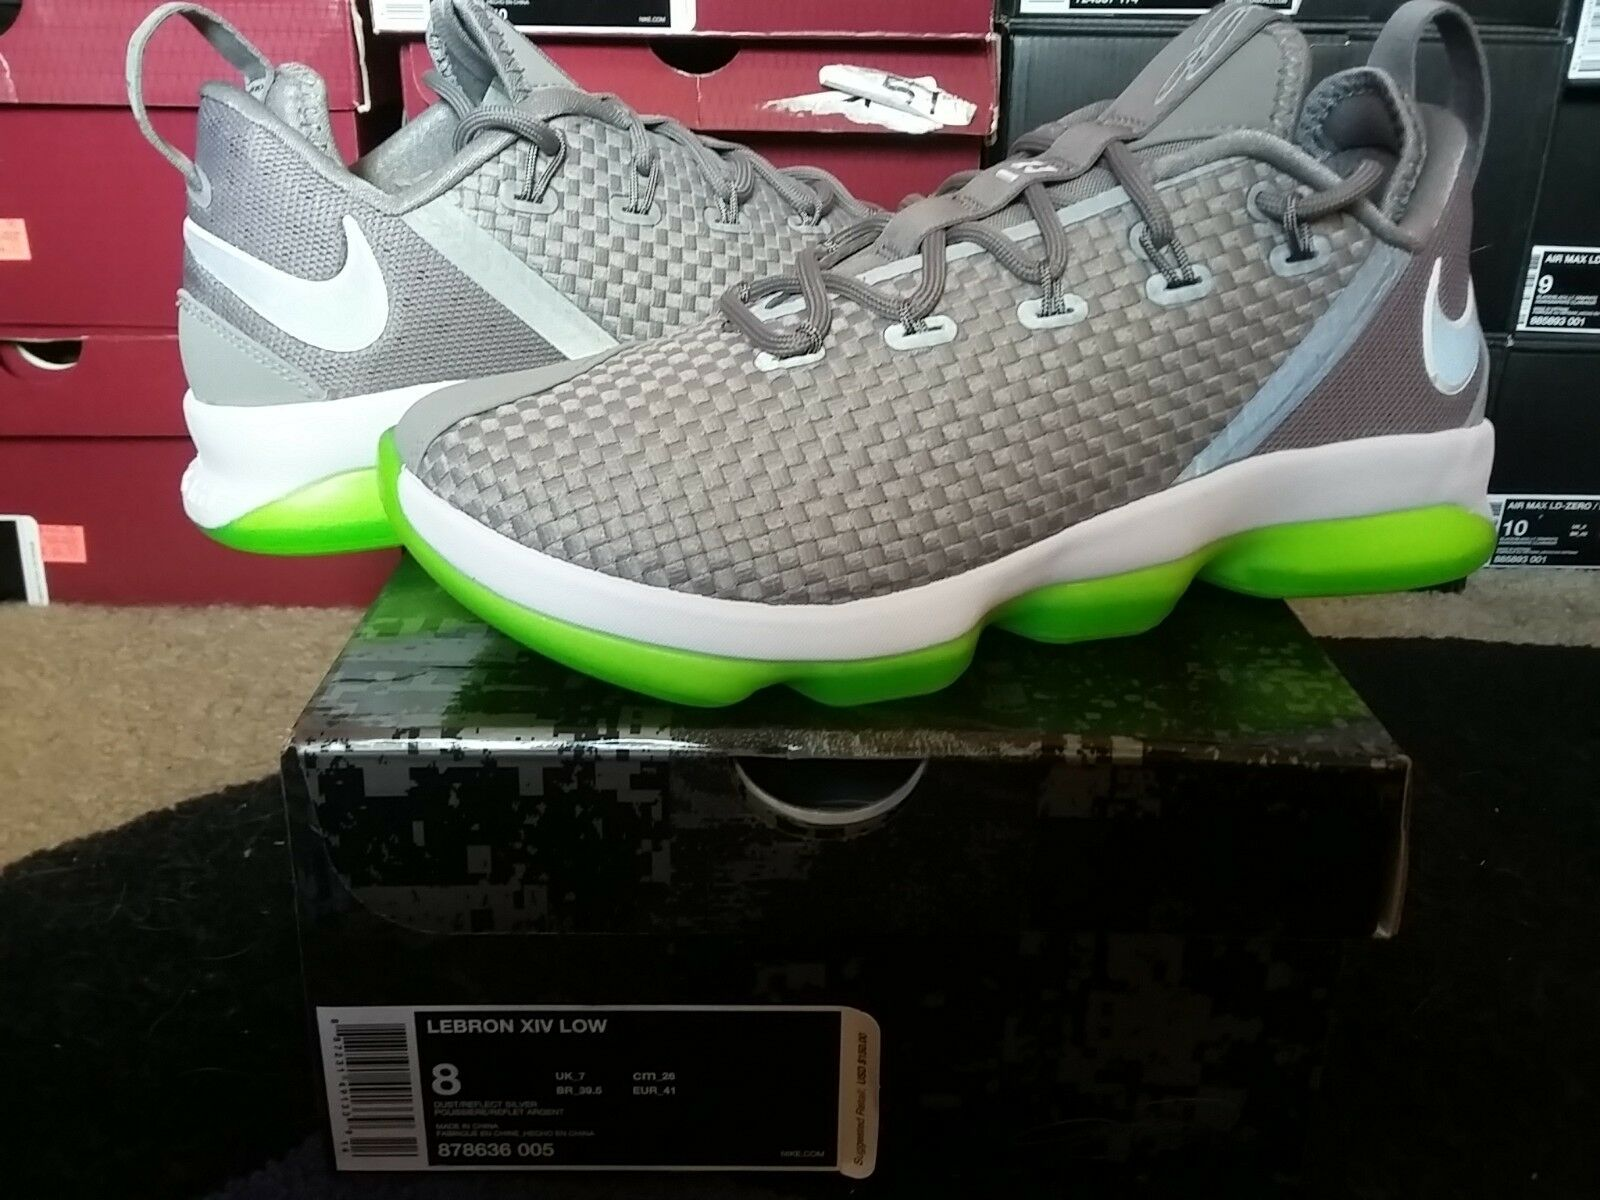 Nike Air Zoom Max LeBron James XIV 14 Low Dunkman Dust Reflect Silver 878636 005